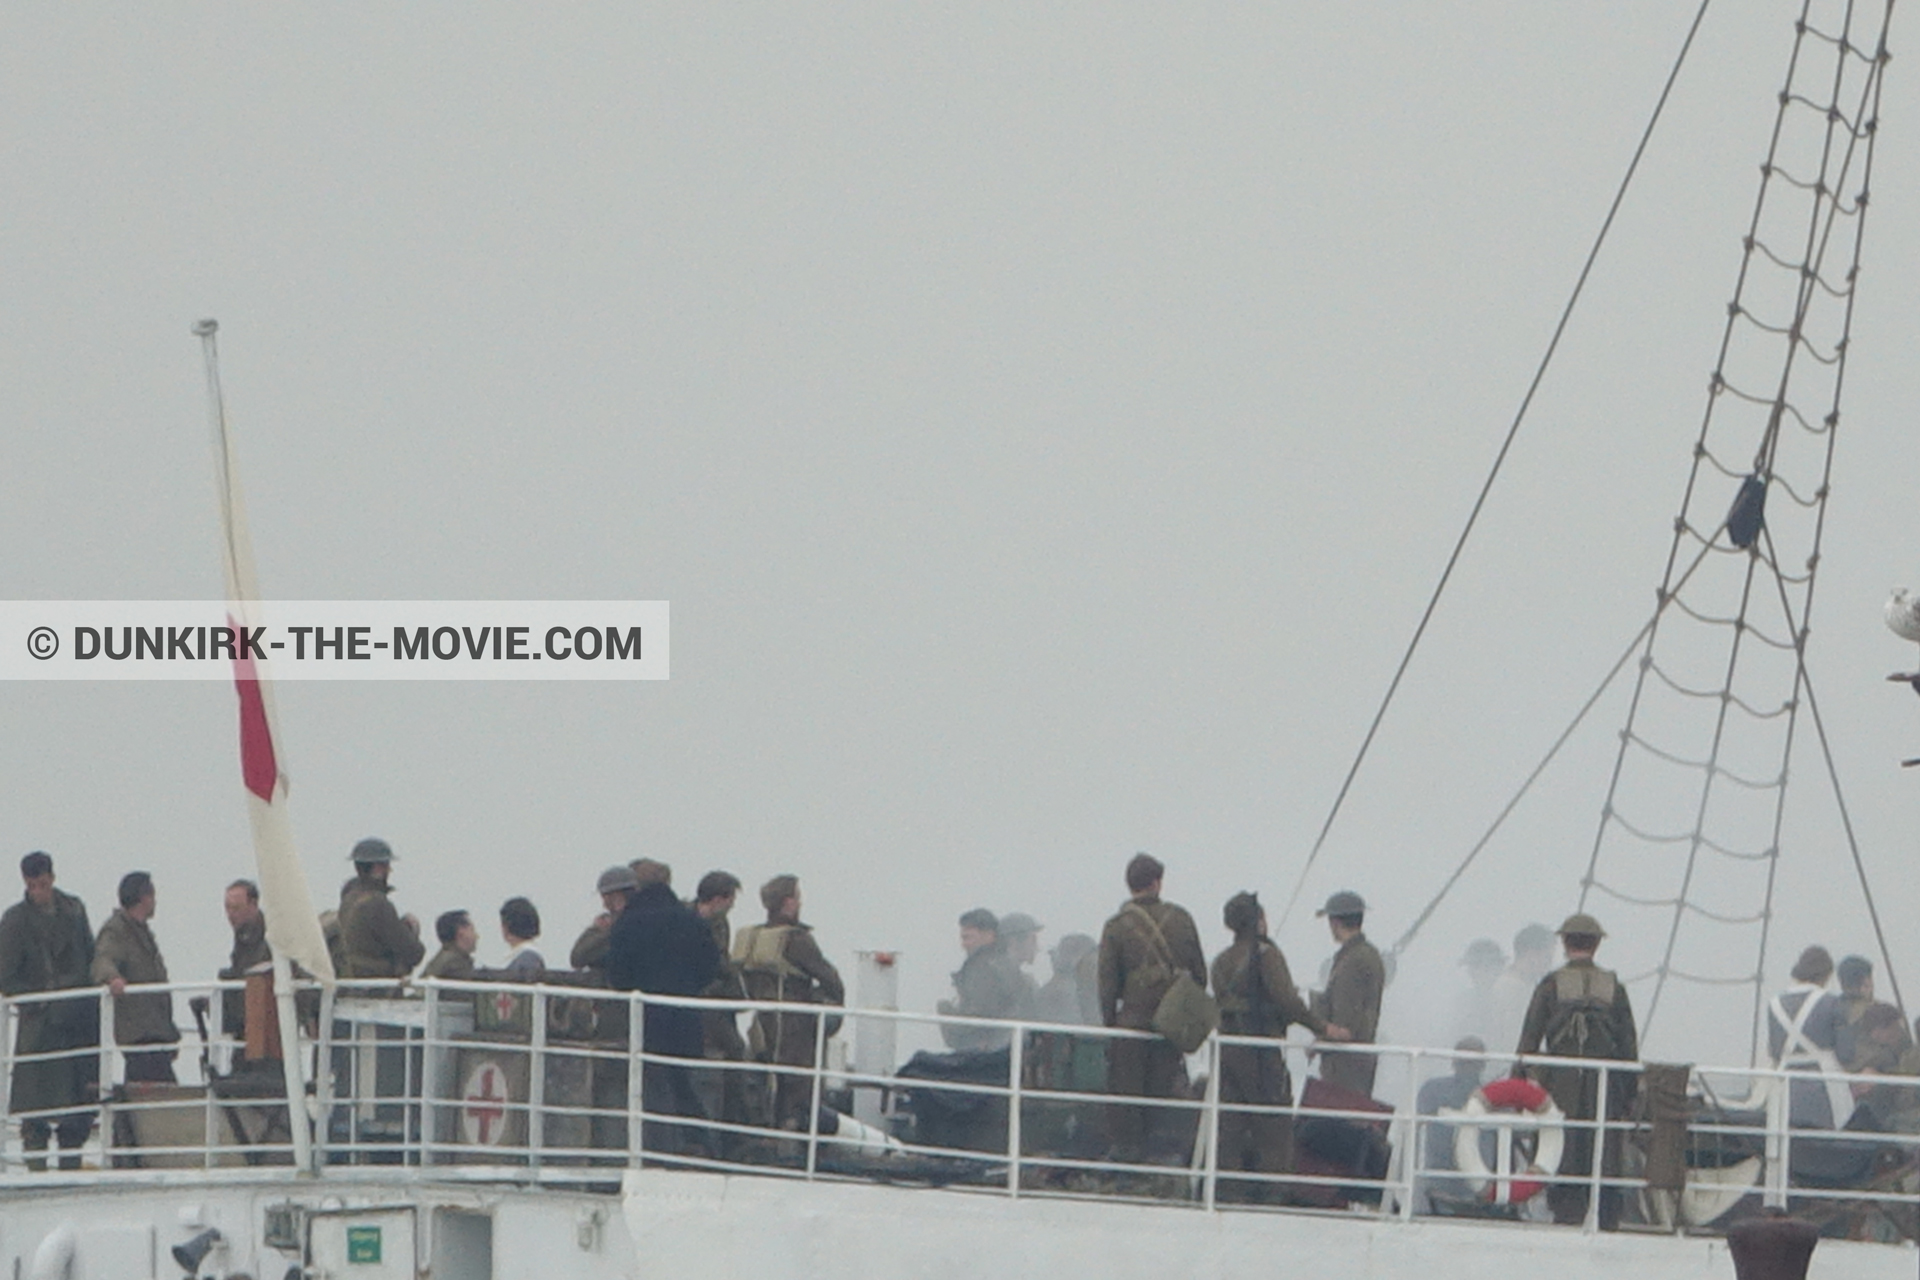 Picture with grey sky, supernumeraries, white smoke, EST pier, technical team, M/S Rogaland,  from behind the scene of the Dunkirk movie by Nolan